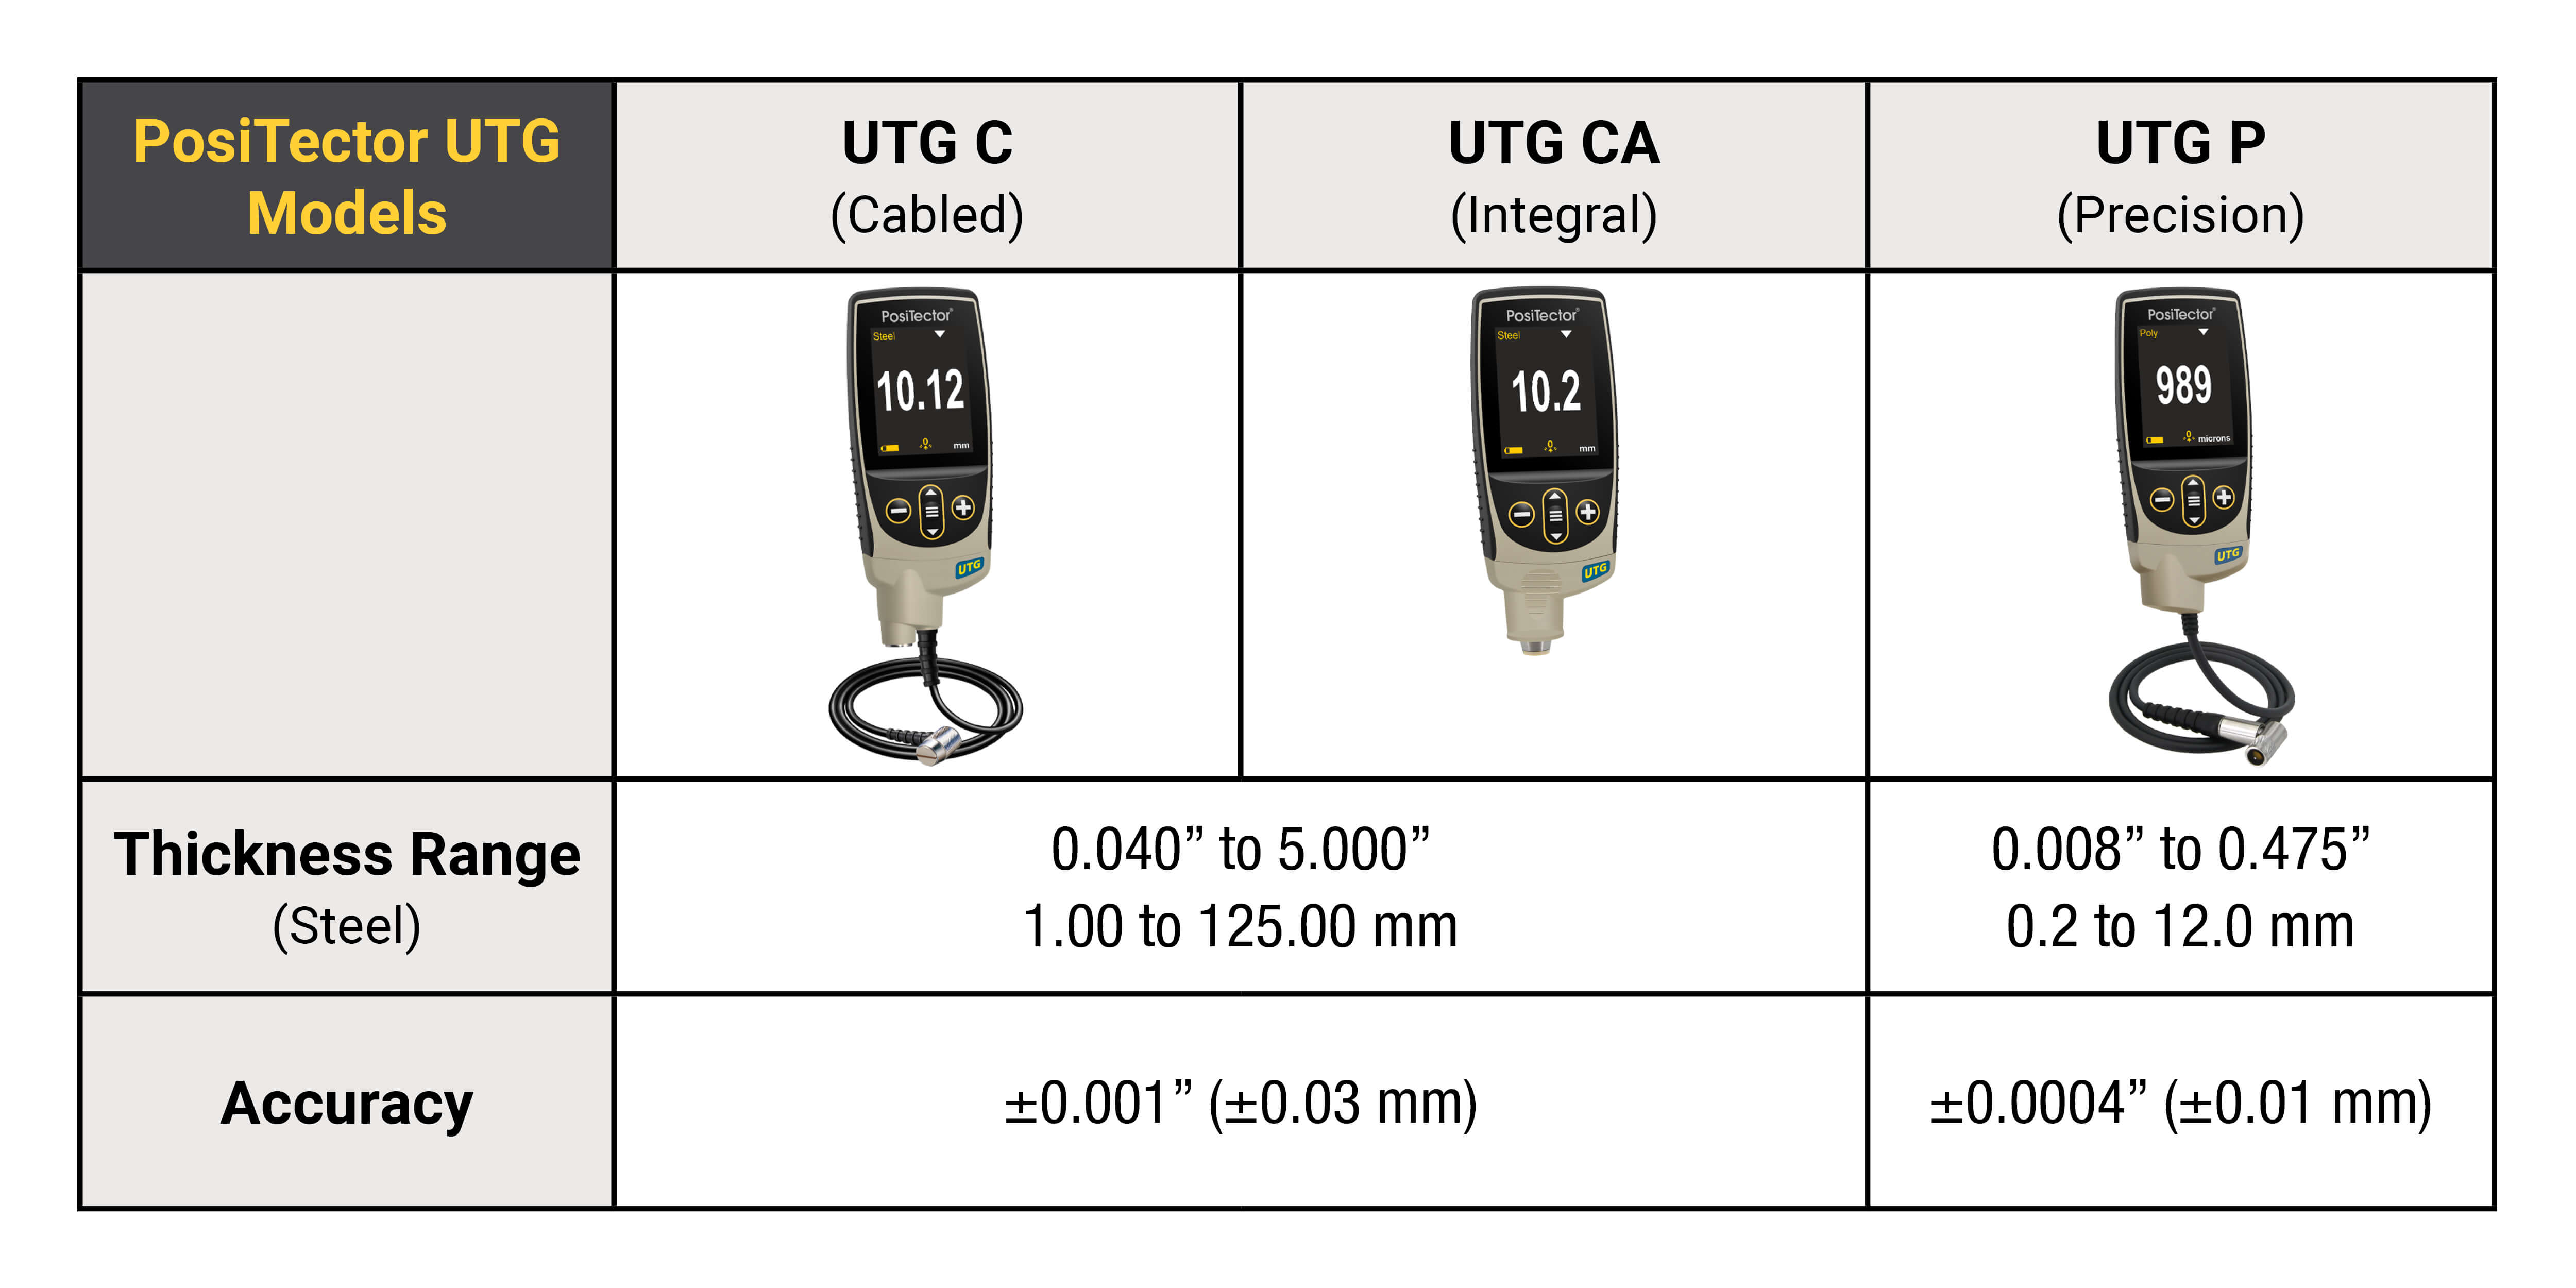 Chart comparing the UTG C, UTG CA, and UTG P PosiTector wall thickness probes